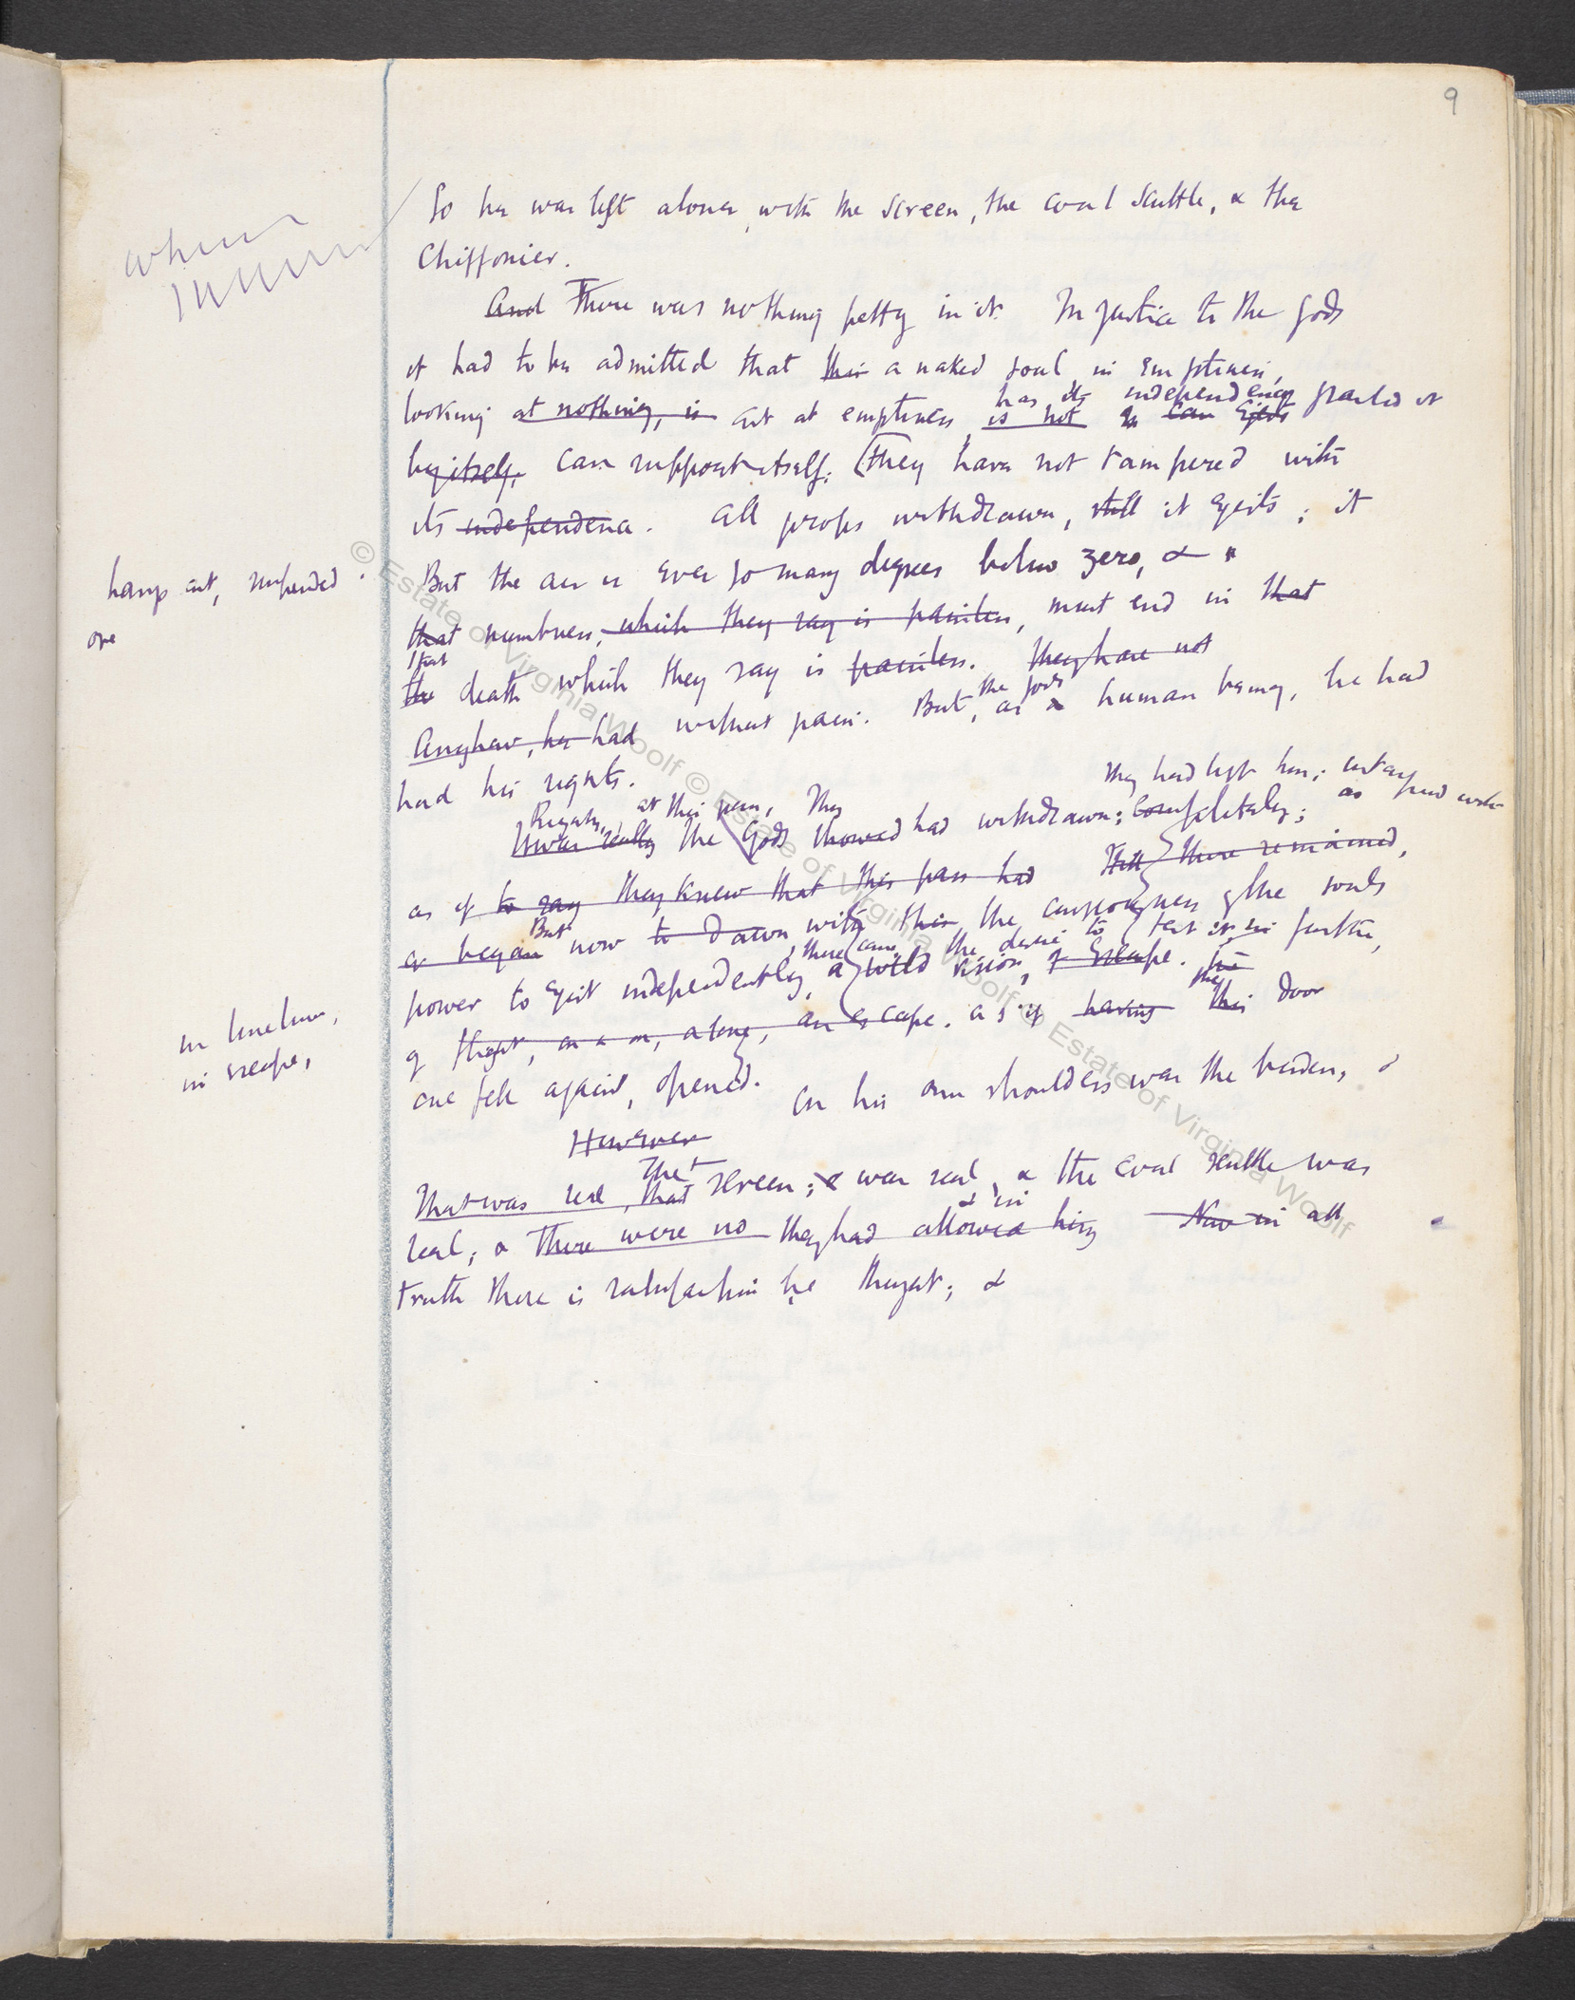 Notebook drafts of Virginia Woolf's Mrs Dalloway (Volume III)